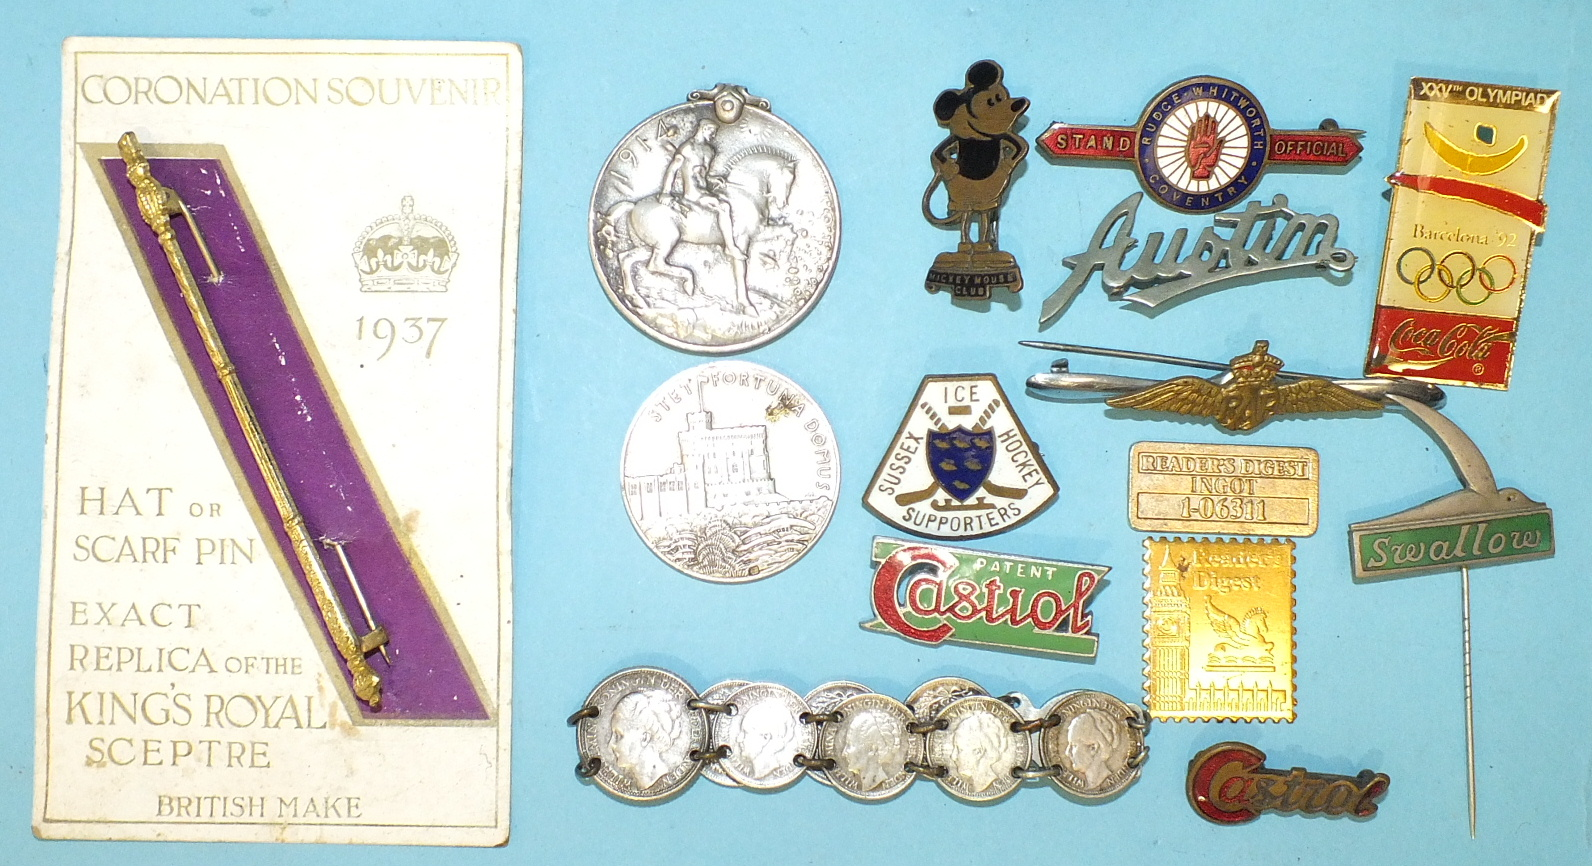 Lot 550 - A 1914-1918 War Medal (pitted) awarded to 156952 Gnr F Putman RA, a vintage Mickey Mouse Club